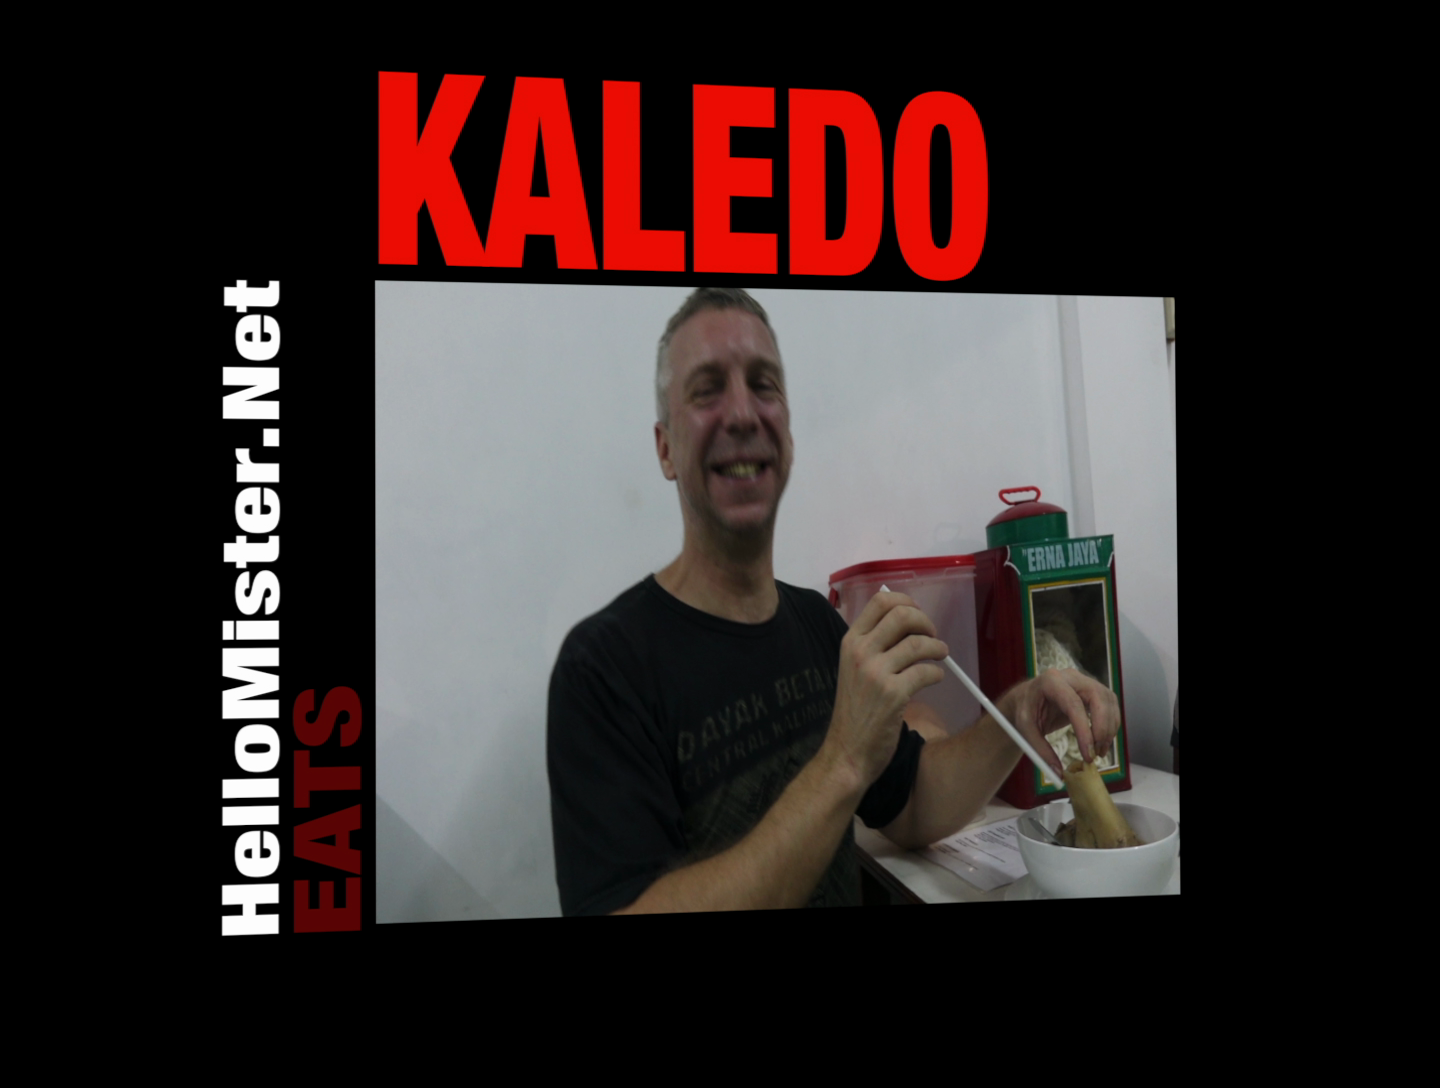 HelloMisterNet eats Kaledo - HelloMisterNet tries a cow bone called Kaledo